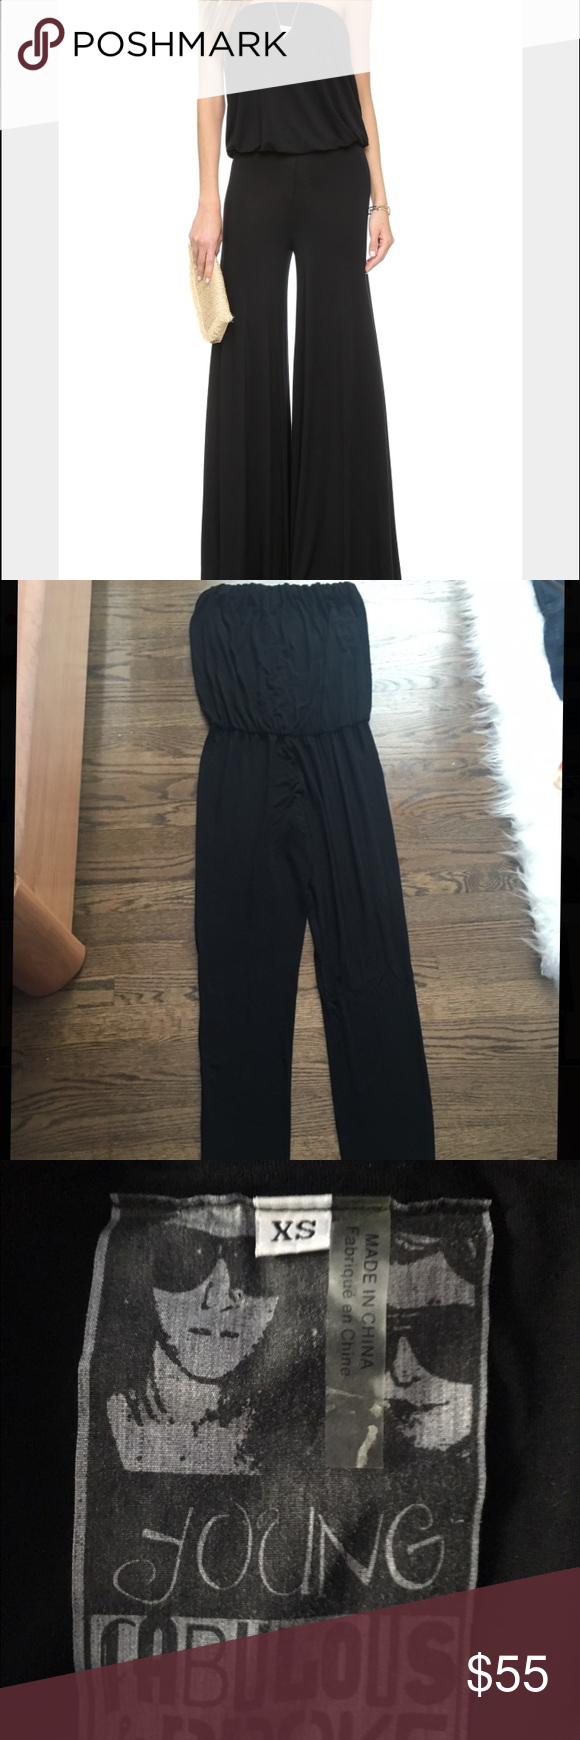 NEW black jumpsuit - young&broke BRAND new, never before worn size xs soft and amazing quality, black jumpsuit by young fabulous & broke. purchased at nordstroms, ripped all the tags off, and never wore it since!!!retails to $200!!! if your looking for a jumpsuit to dress up or to dress down this is it. Very chic and trendy. This jumpsuit can fit an xs, a s or even a medium! very stretchy Young Fabulous & Broke Other